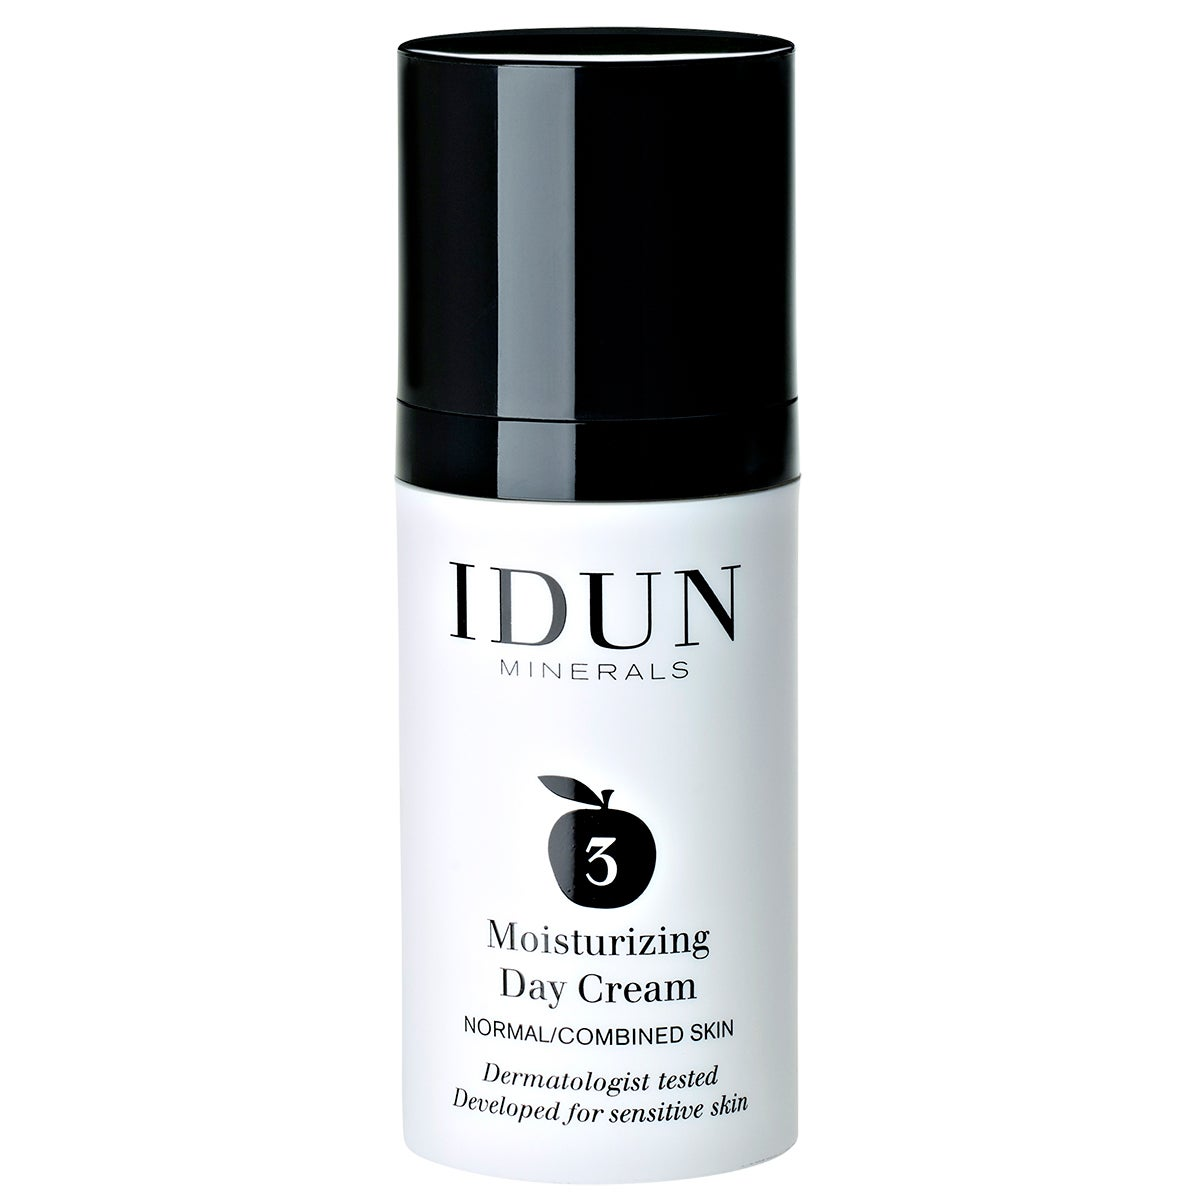 IDUN Moisturizing Day Cream for Normal/Combined Skin 50 ml IDUN Minerals Allround